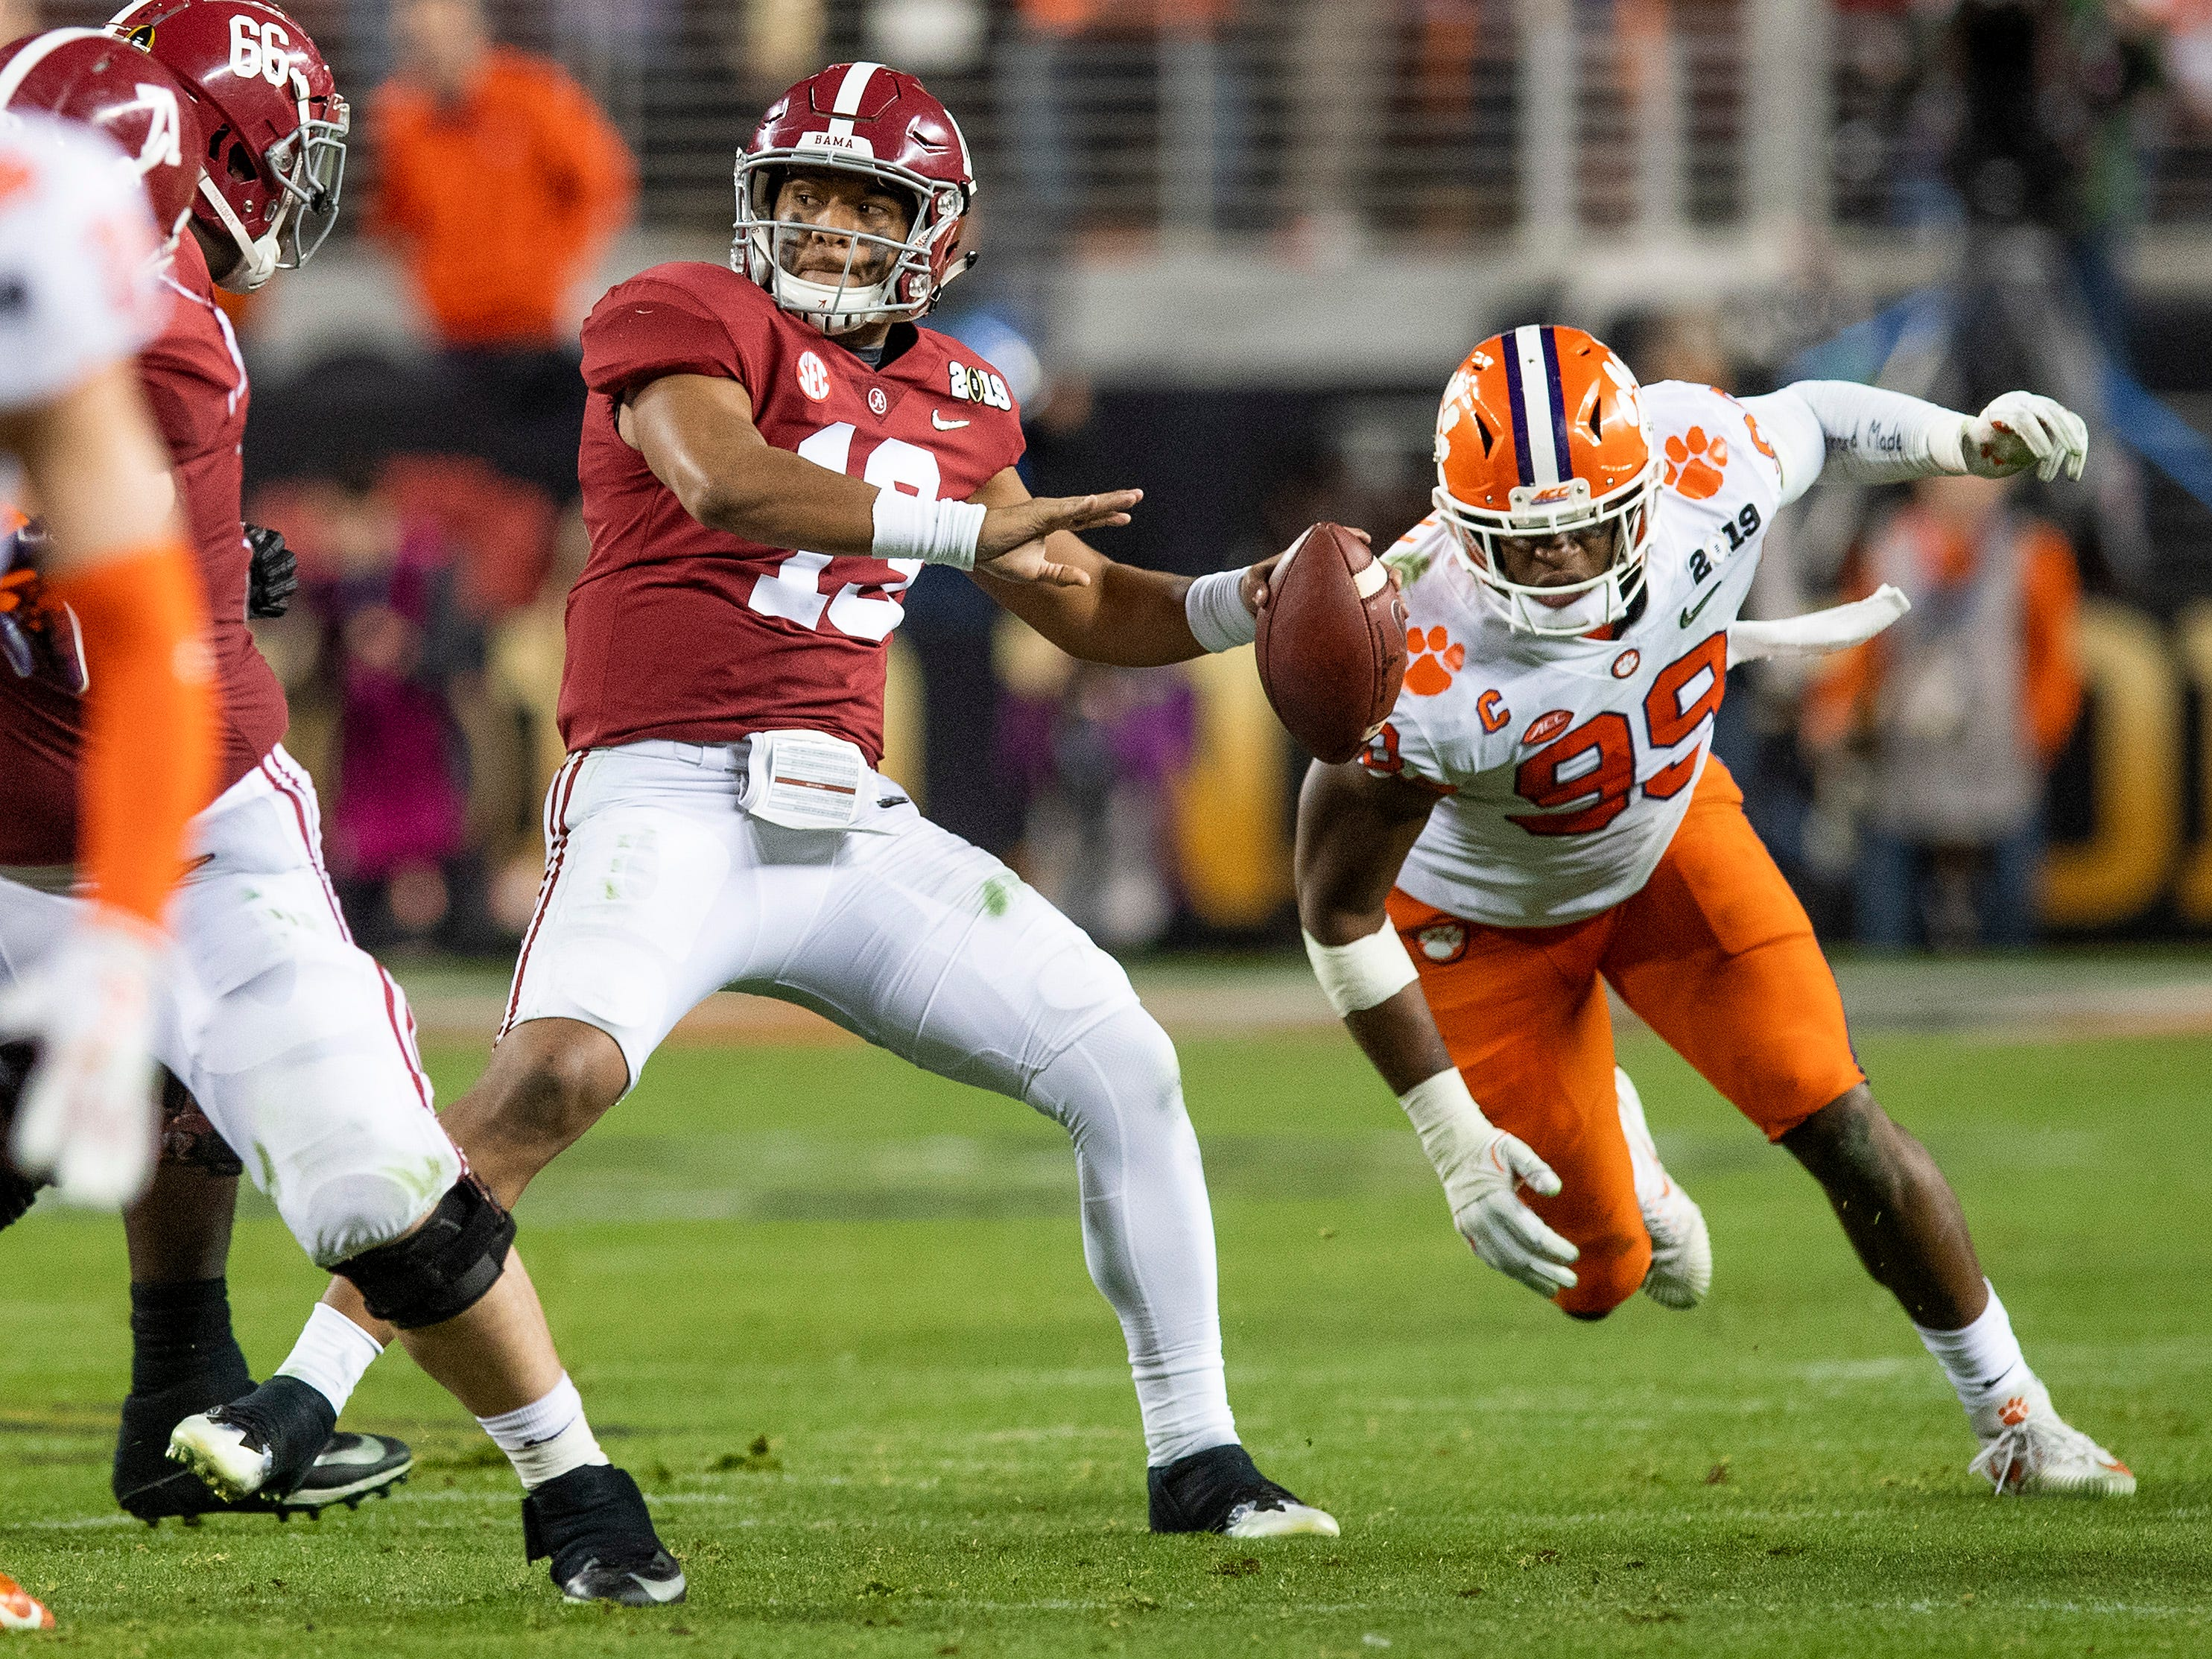 Alabama quarterback Tua Tagovailoa (13) passes against Clemson In second half action of the College Football Playoff National Championship game at Levi's Stadium in Santa Clara, Ca., on Monday January 7, 2019.